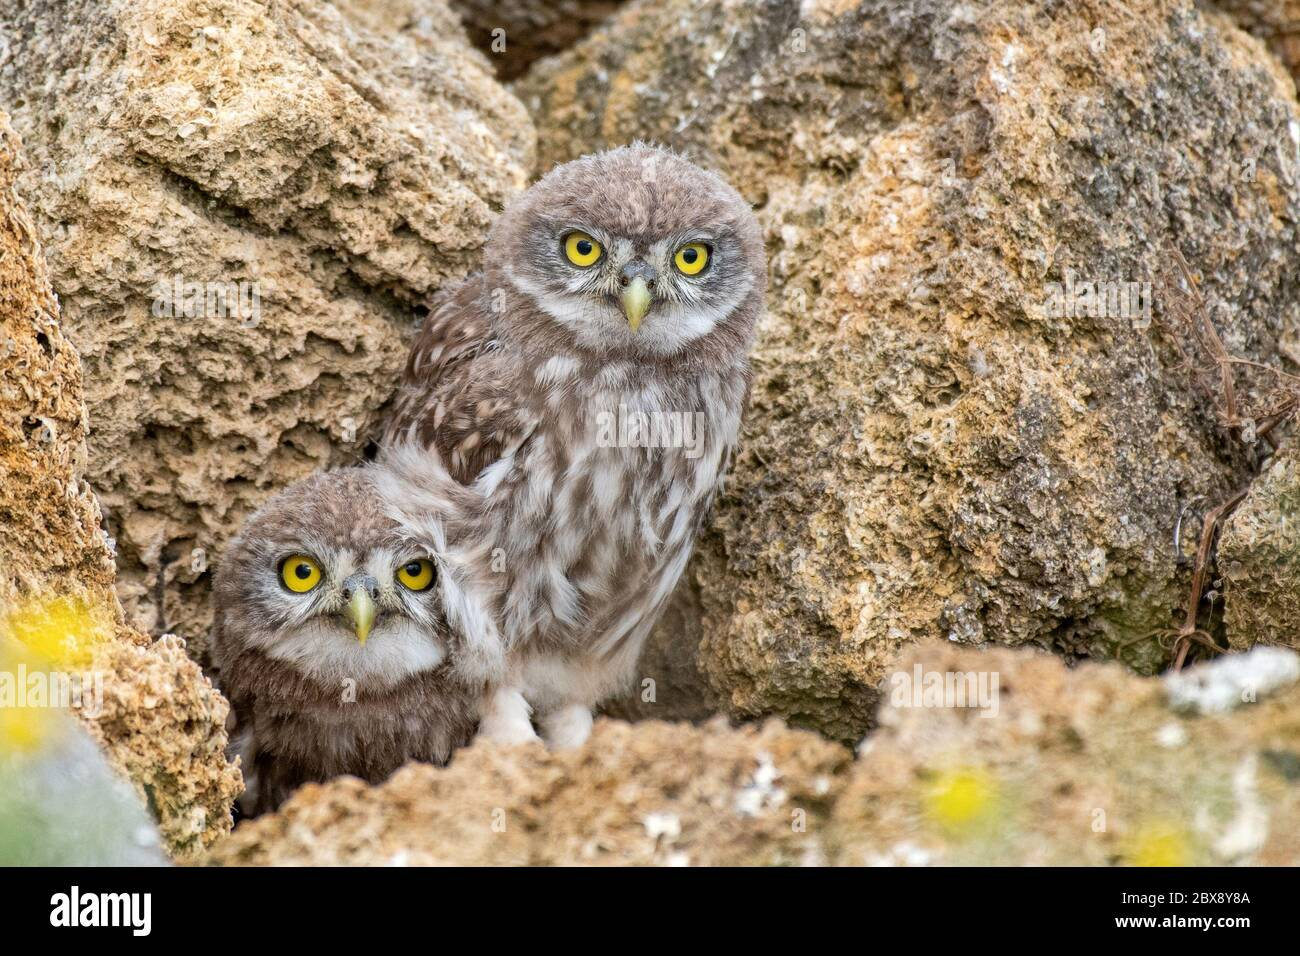 Two young Little owl, Athene noctua, peeking out of a hole in the rocks. Stock Photo